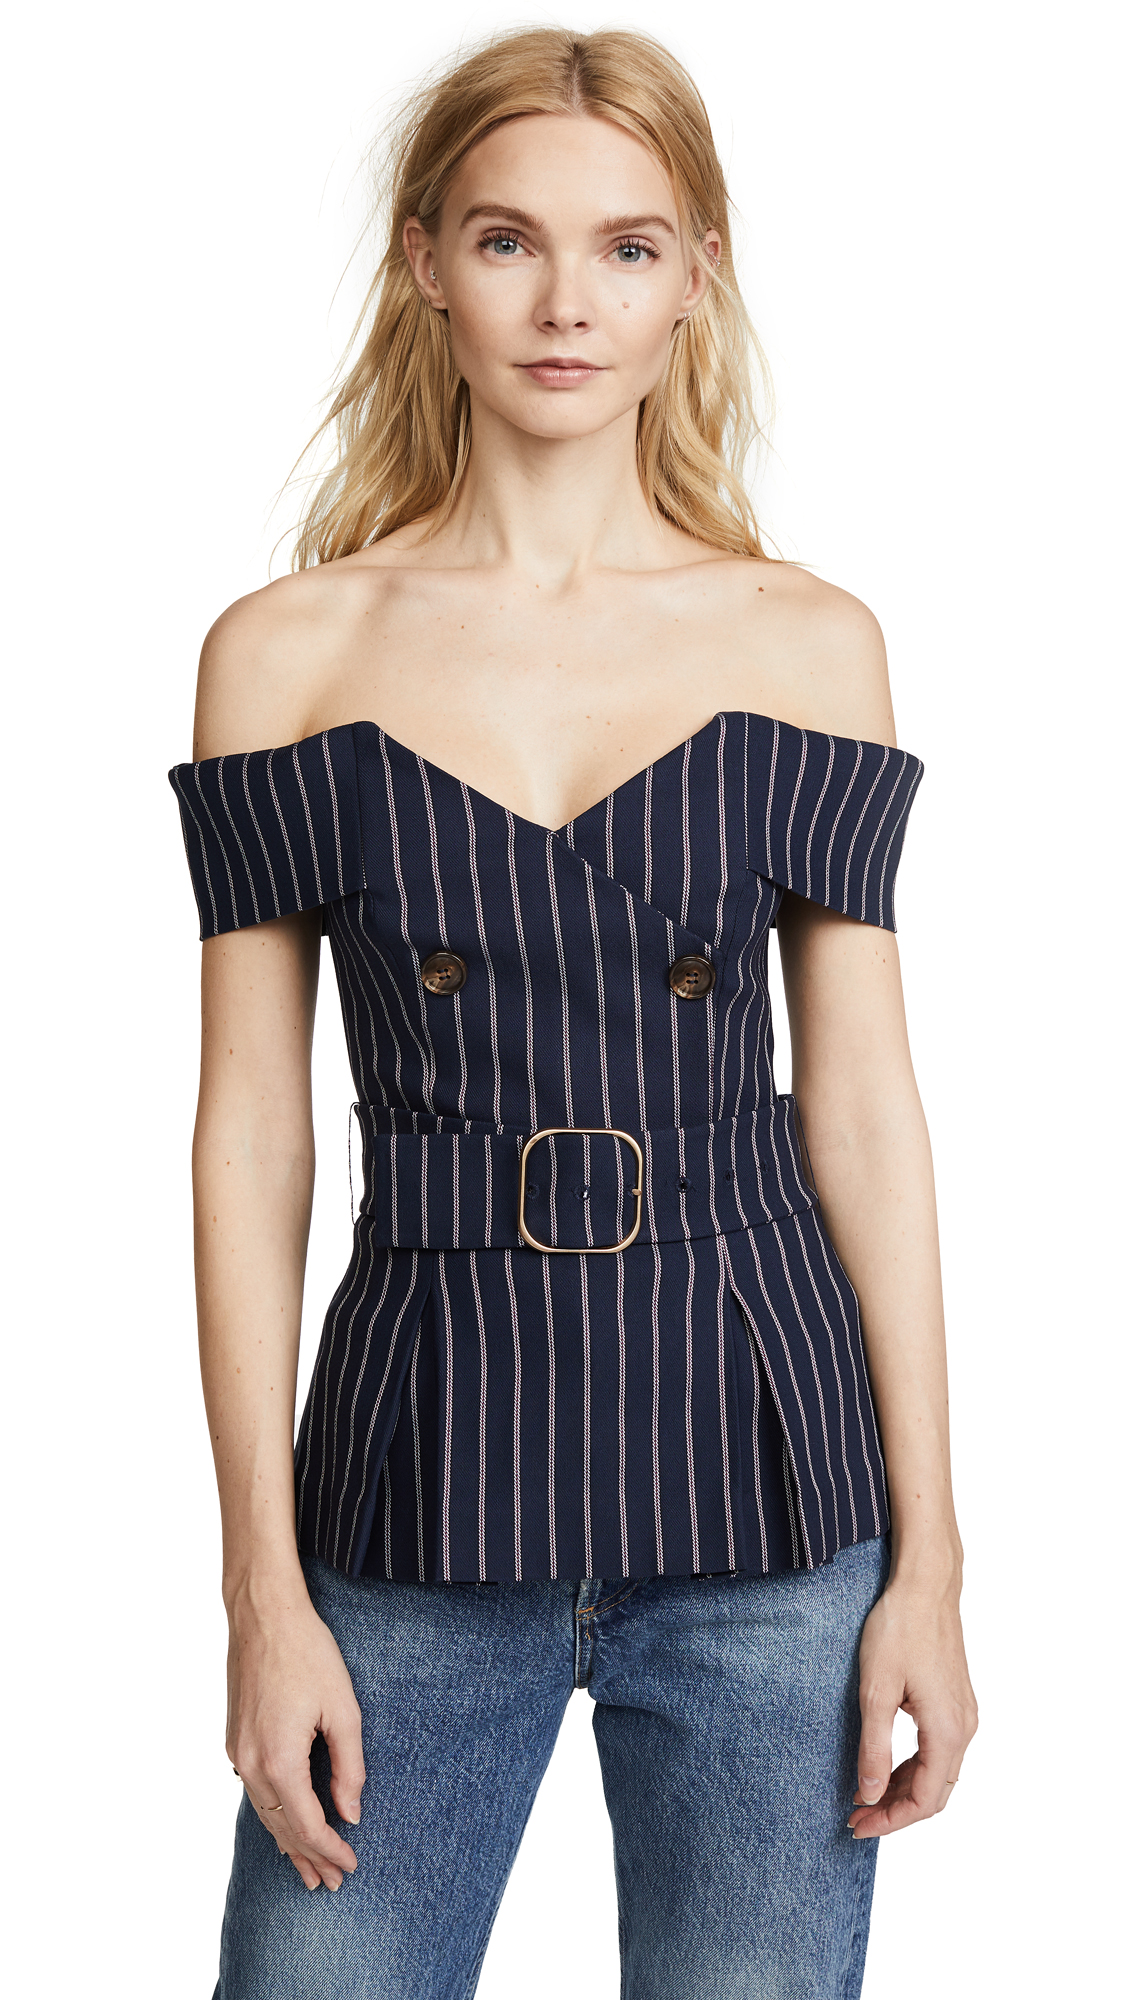 Nicholas Double Breasted Top - Pinstripe